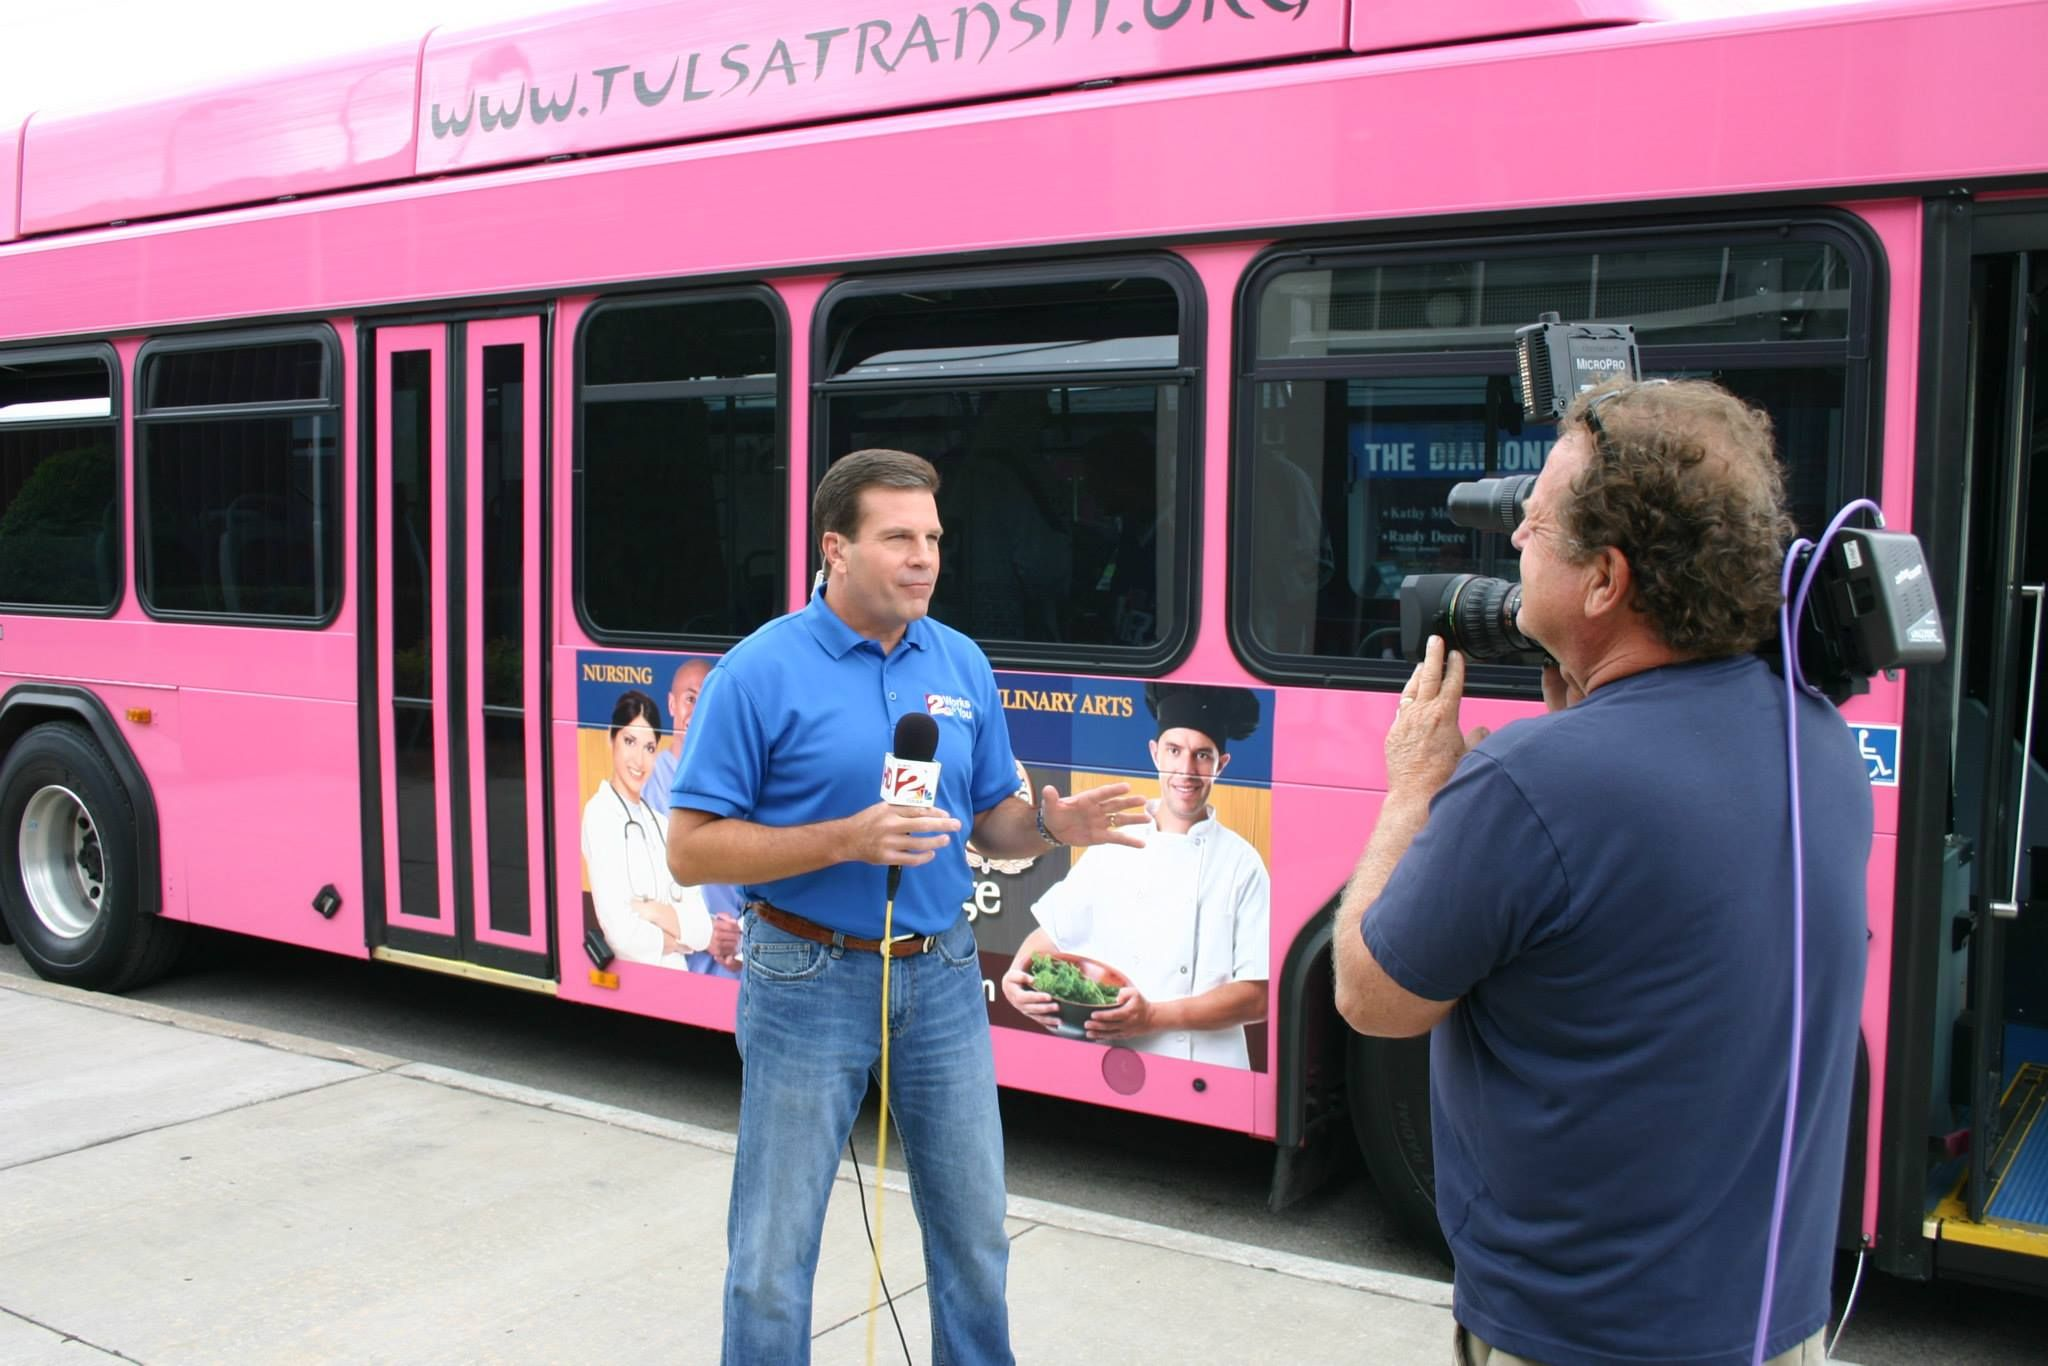 Russ Mccaskey Reports Live From In Front Of The Tulsa Transit Bus Loaded With Operation Homefront Donations Tulsa Military Family Oklahoma